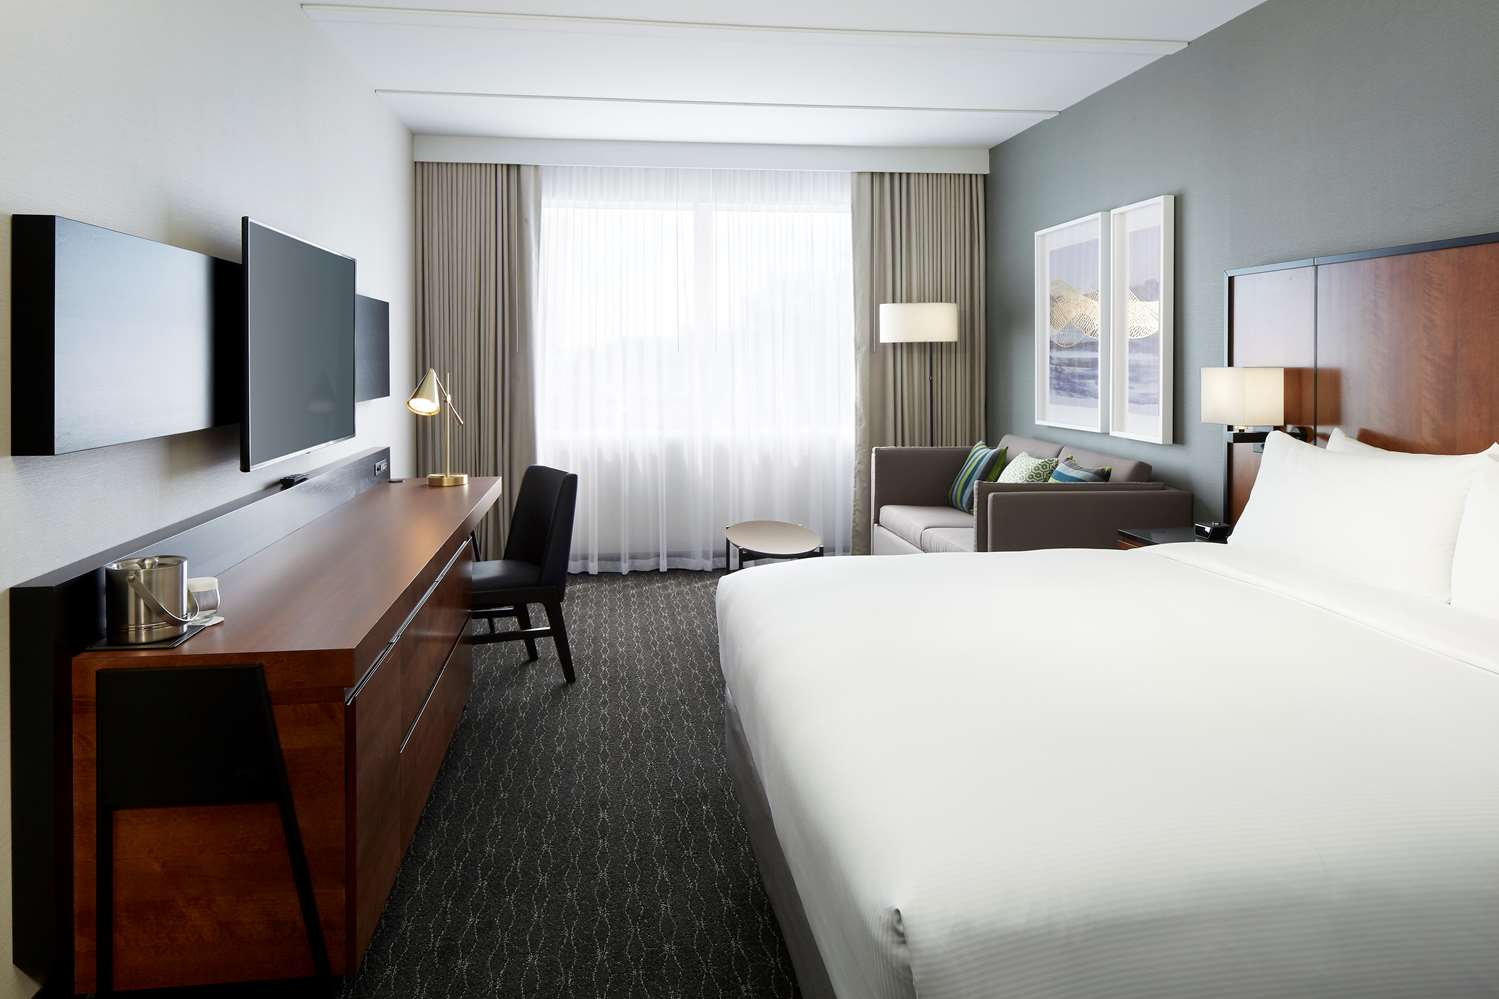 Room - DoubleTree by Hilton Hotel Trudeau Airport Dorval